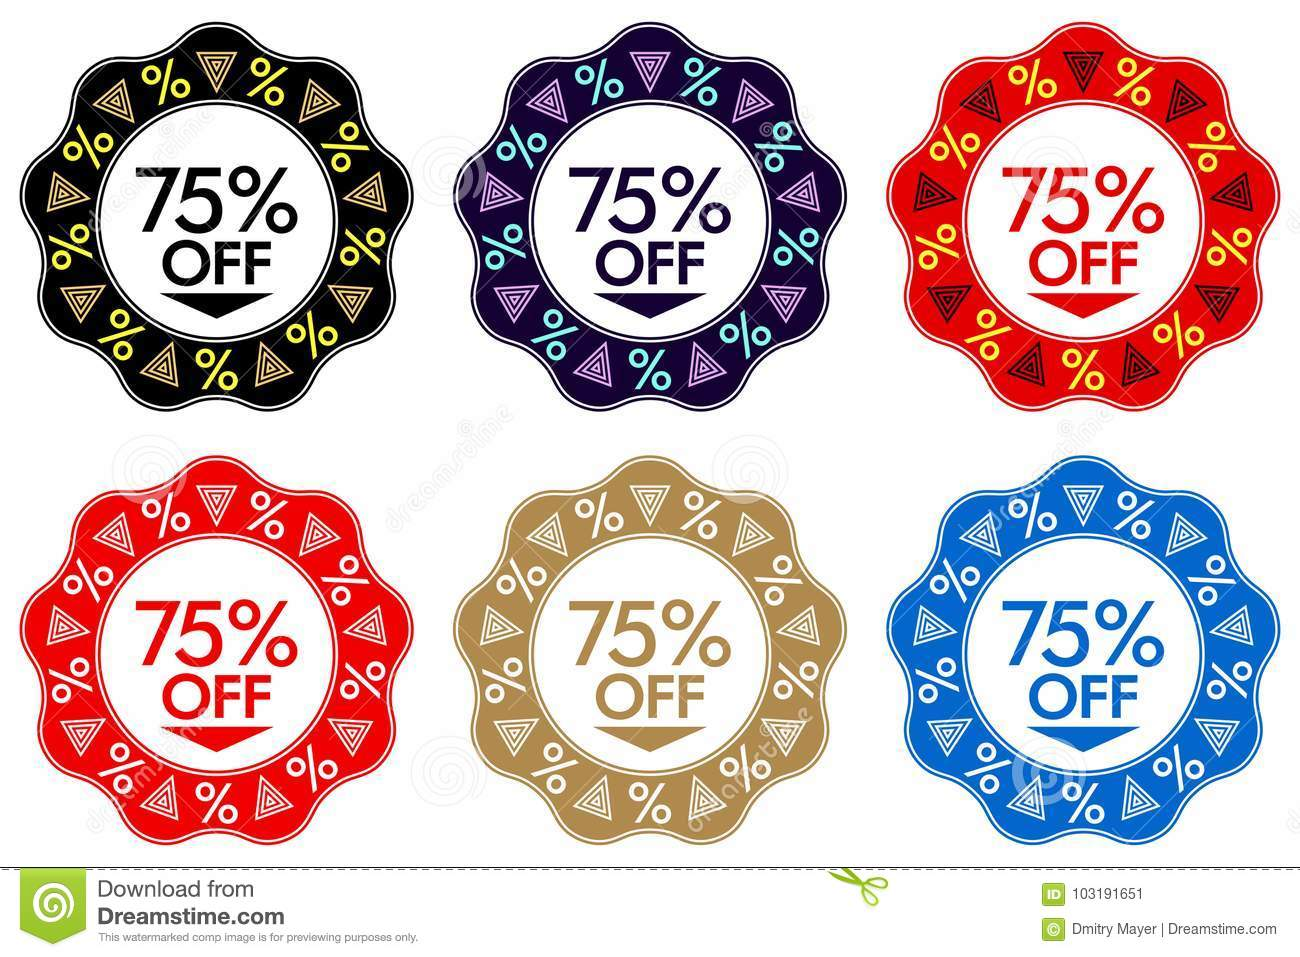 75 Off Discount Sticker. Set of Banner Design with 75 off